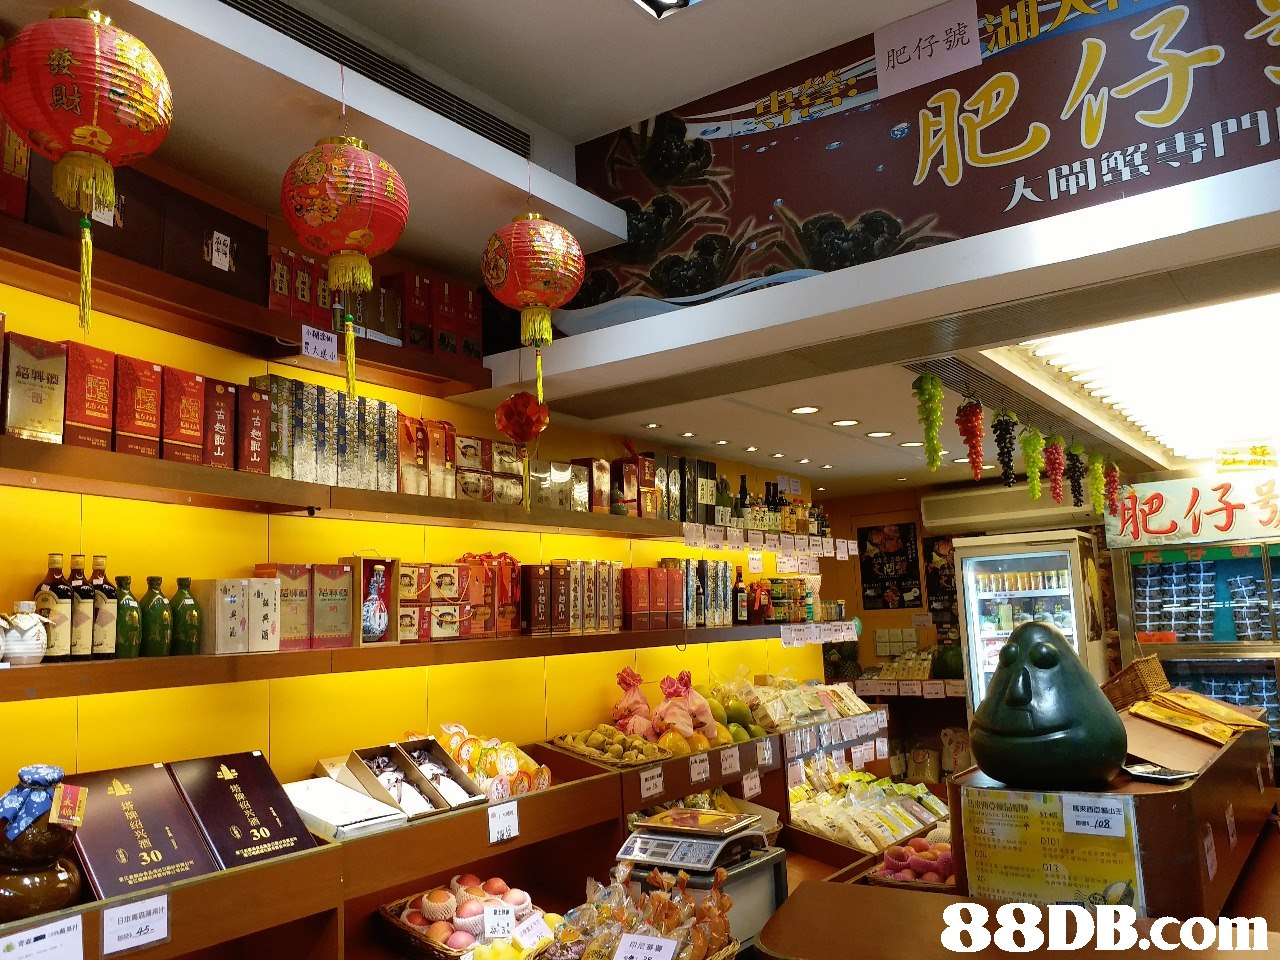 肥仔號 30 30 日本青森瀰果汁 88DB co  supermarket,convenience store,retail,grocery store,convenience food